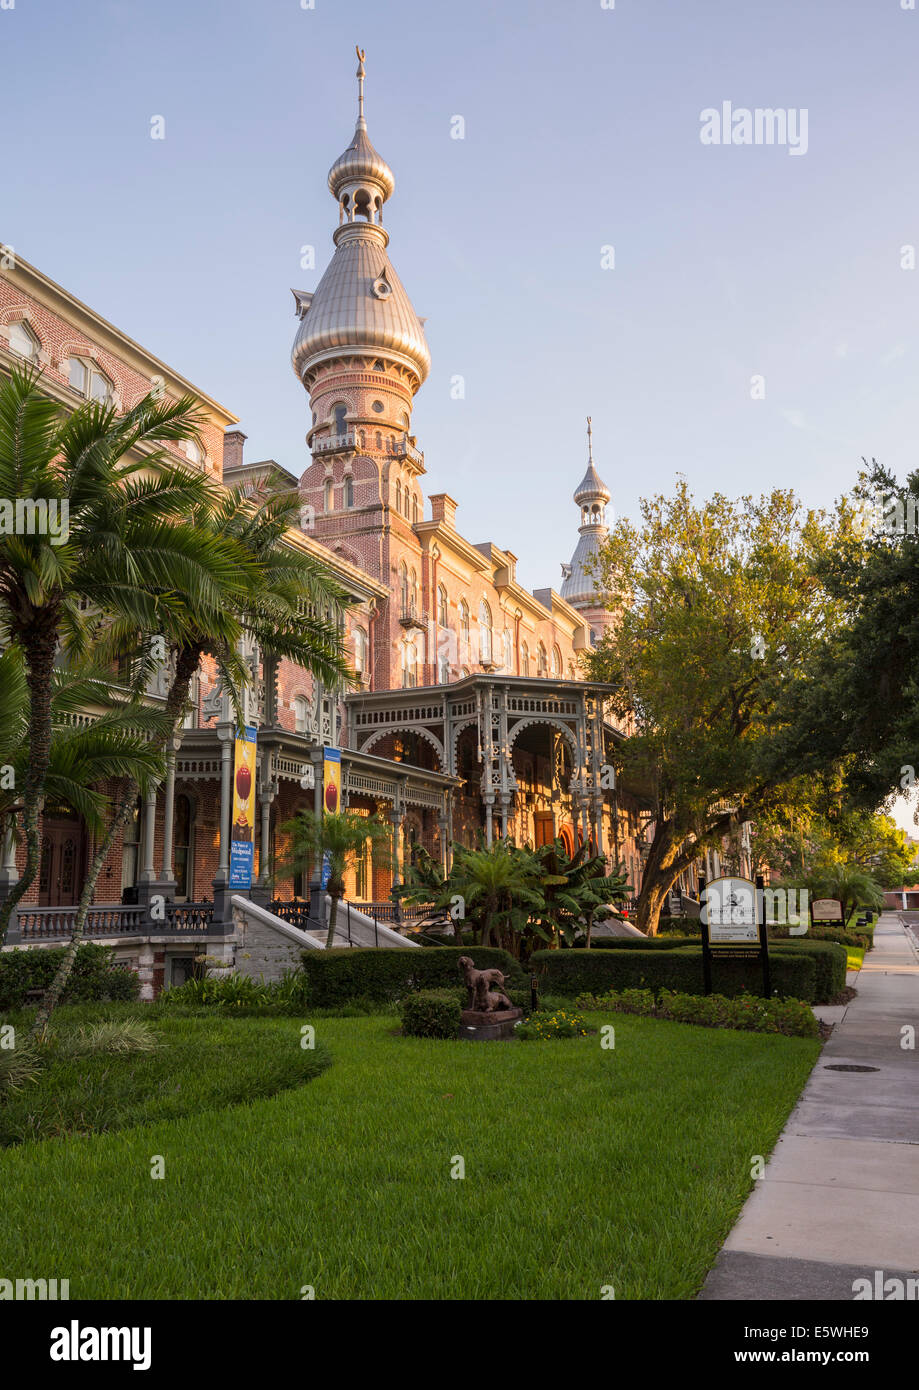 Henry B Plant museum, University of Tampa, Tampa, Florida, USA - Stock Image